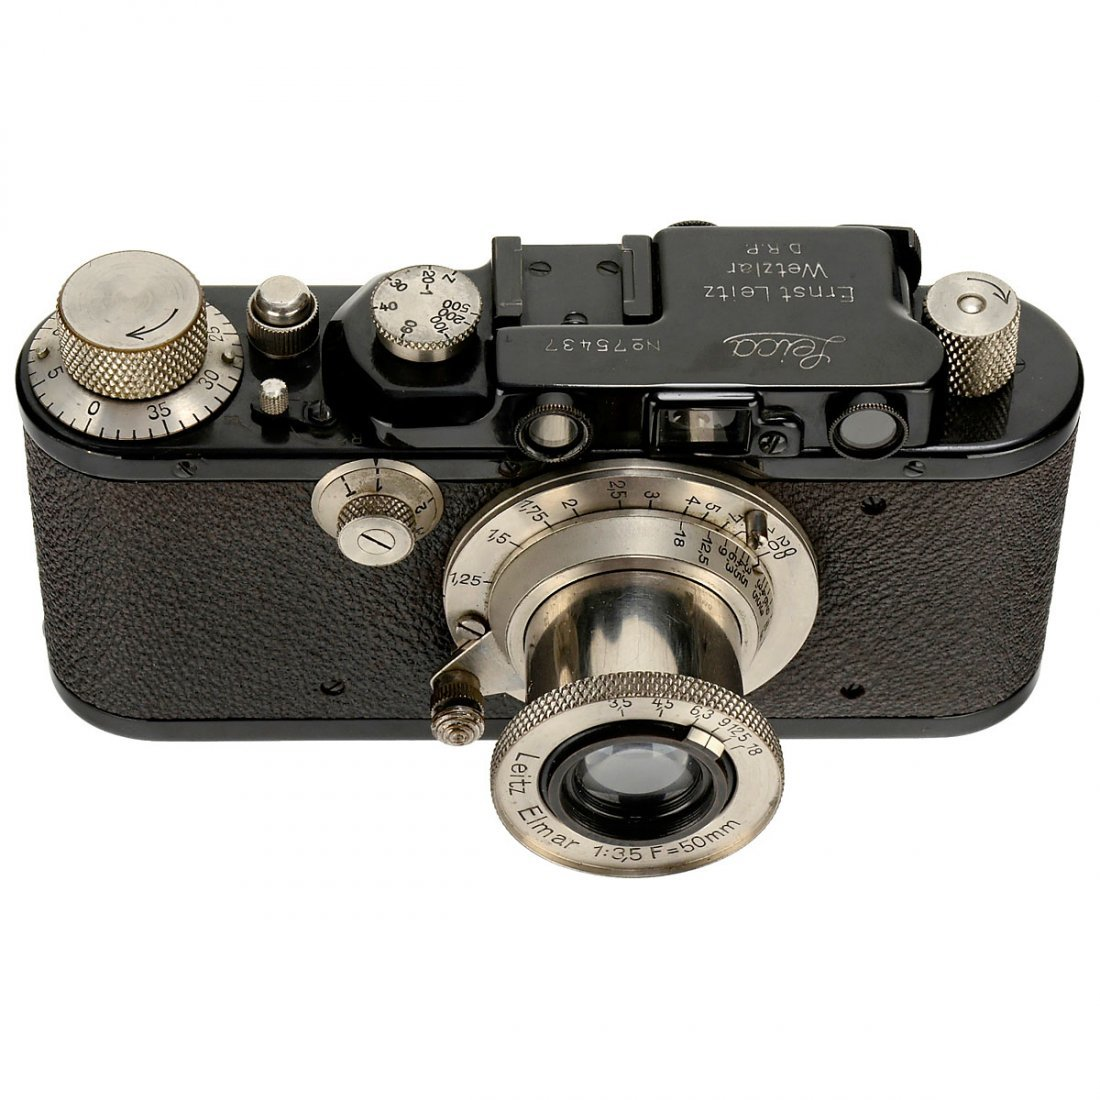 Leica II (D) with Elmar 50 mm, 1932